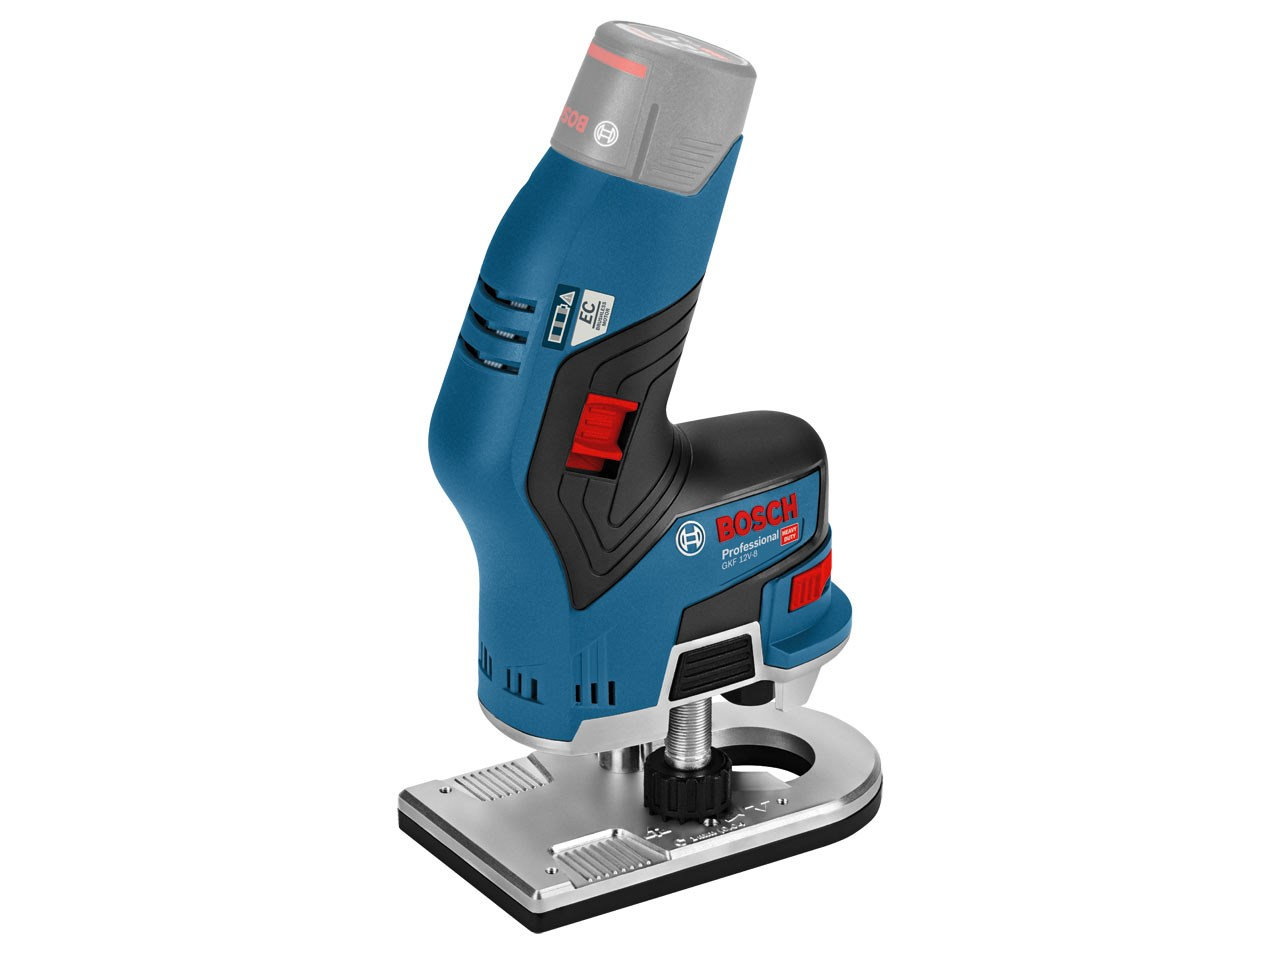 Bosch gkf 12 v 8 12v li ion brushless router bare unit greentooth Image collections